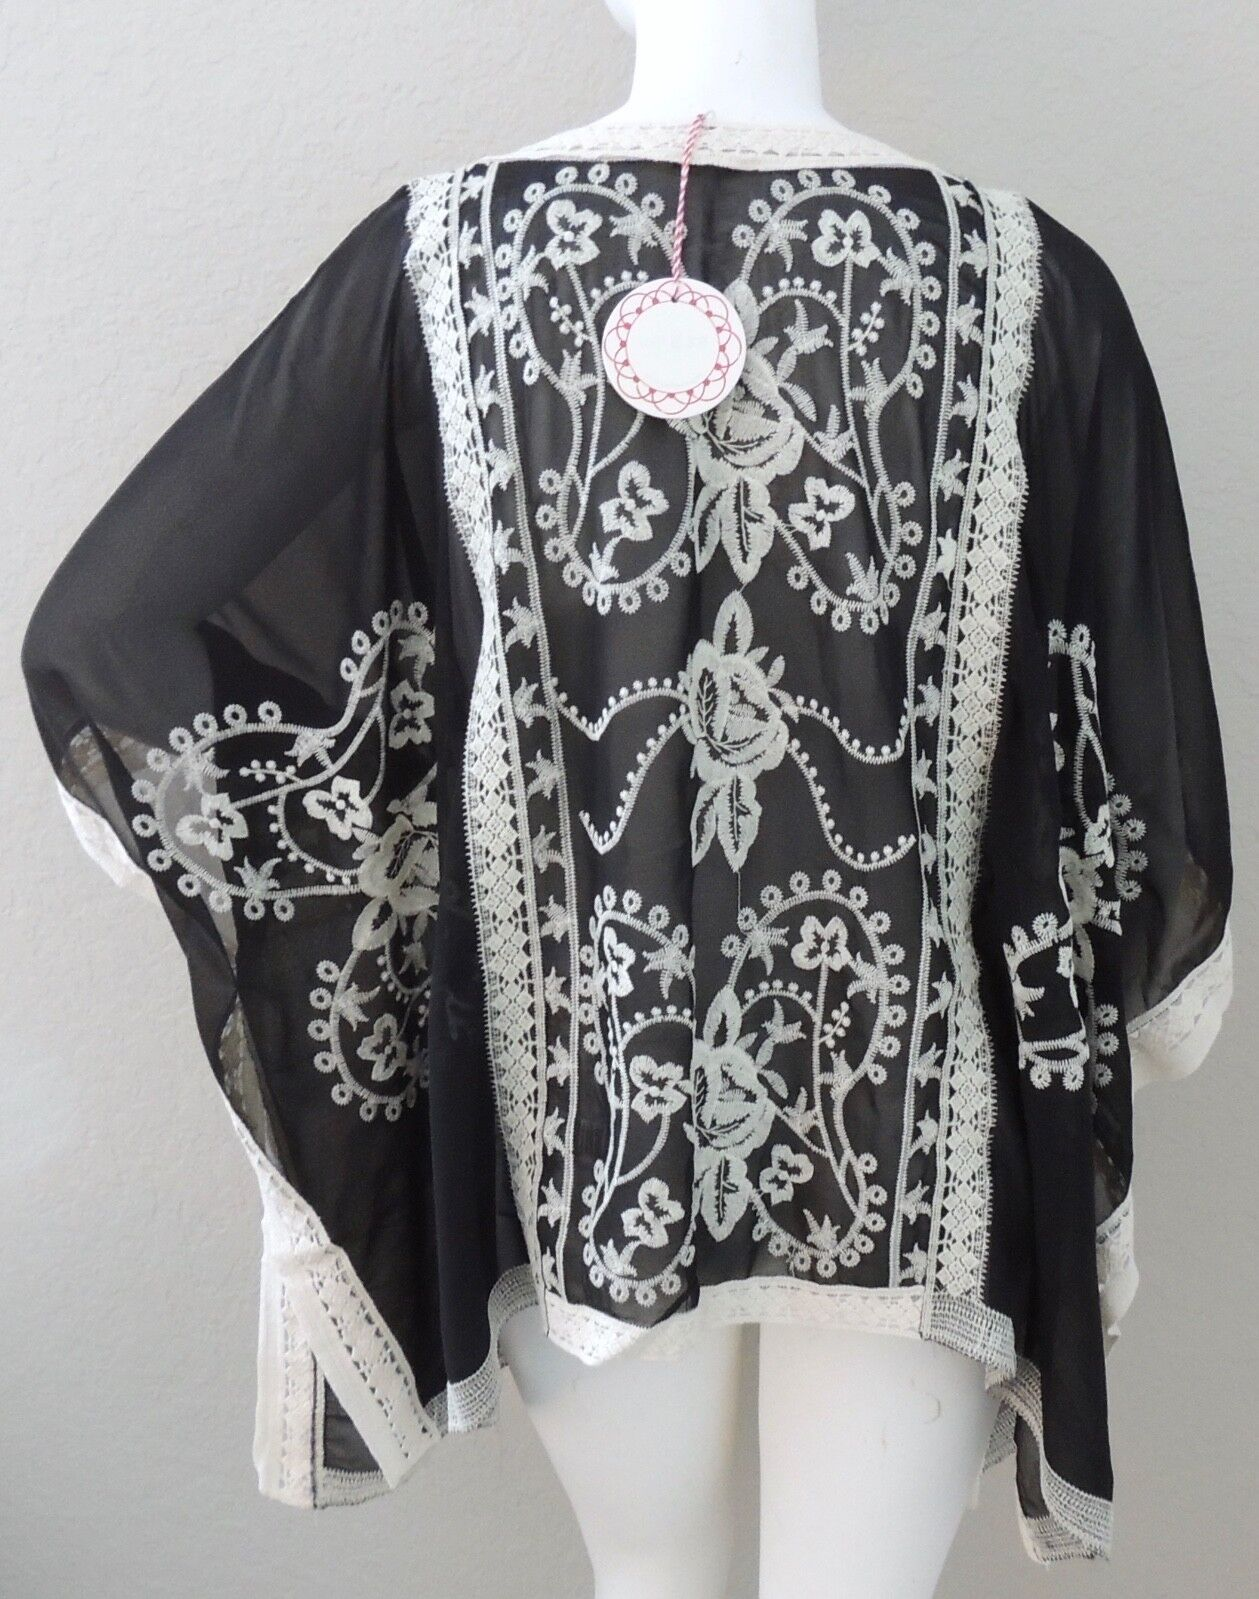 Umgee Embroidered Floral Kimono Wrap Cardigan Jacket Black - Plus ...